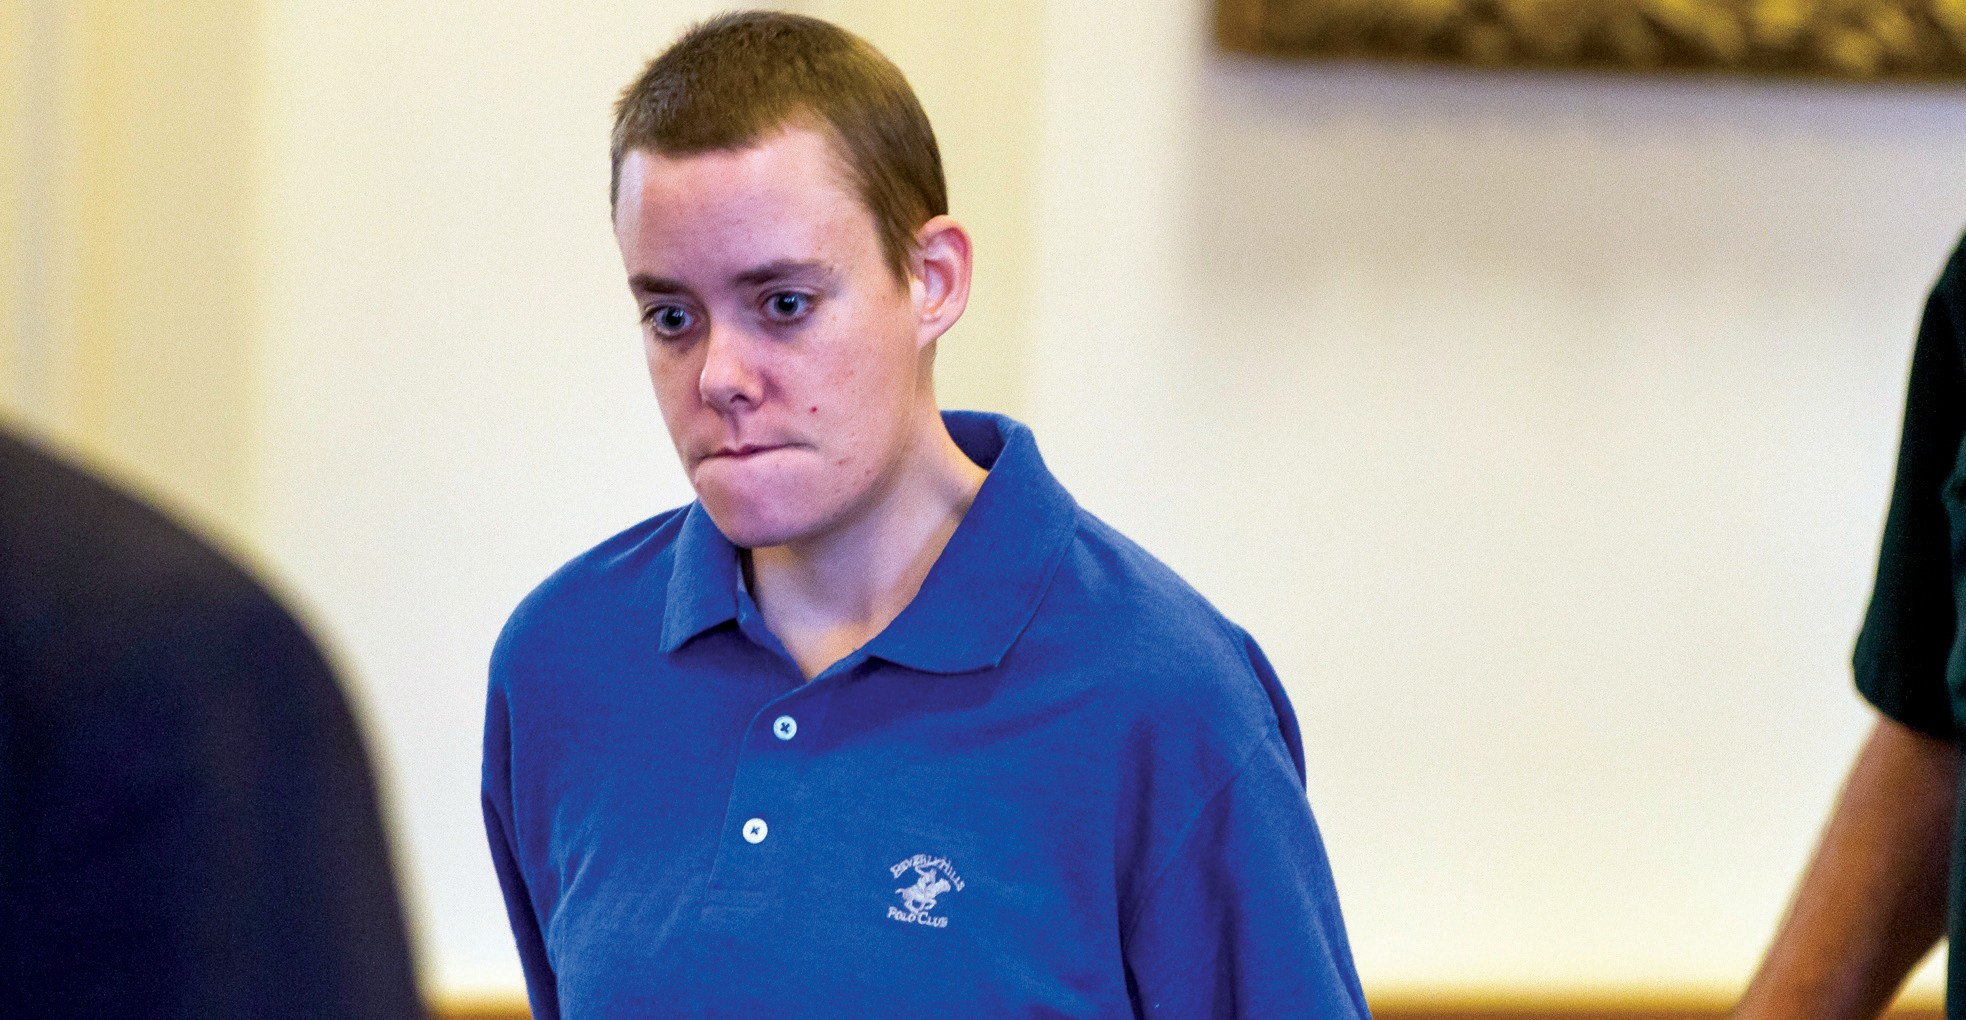 Connor MacCalister, 31, of Saco, is led into the courtroom at the York County Courthouse, Thursday, in Alfred.